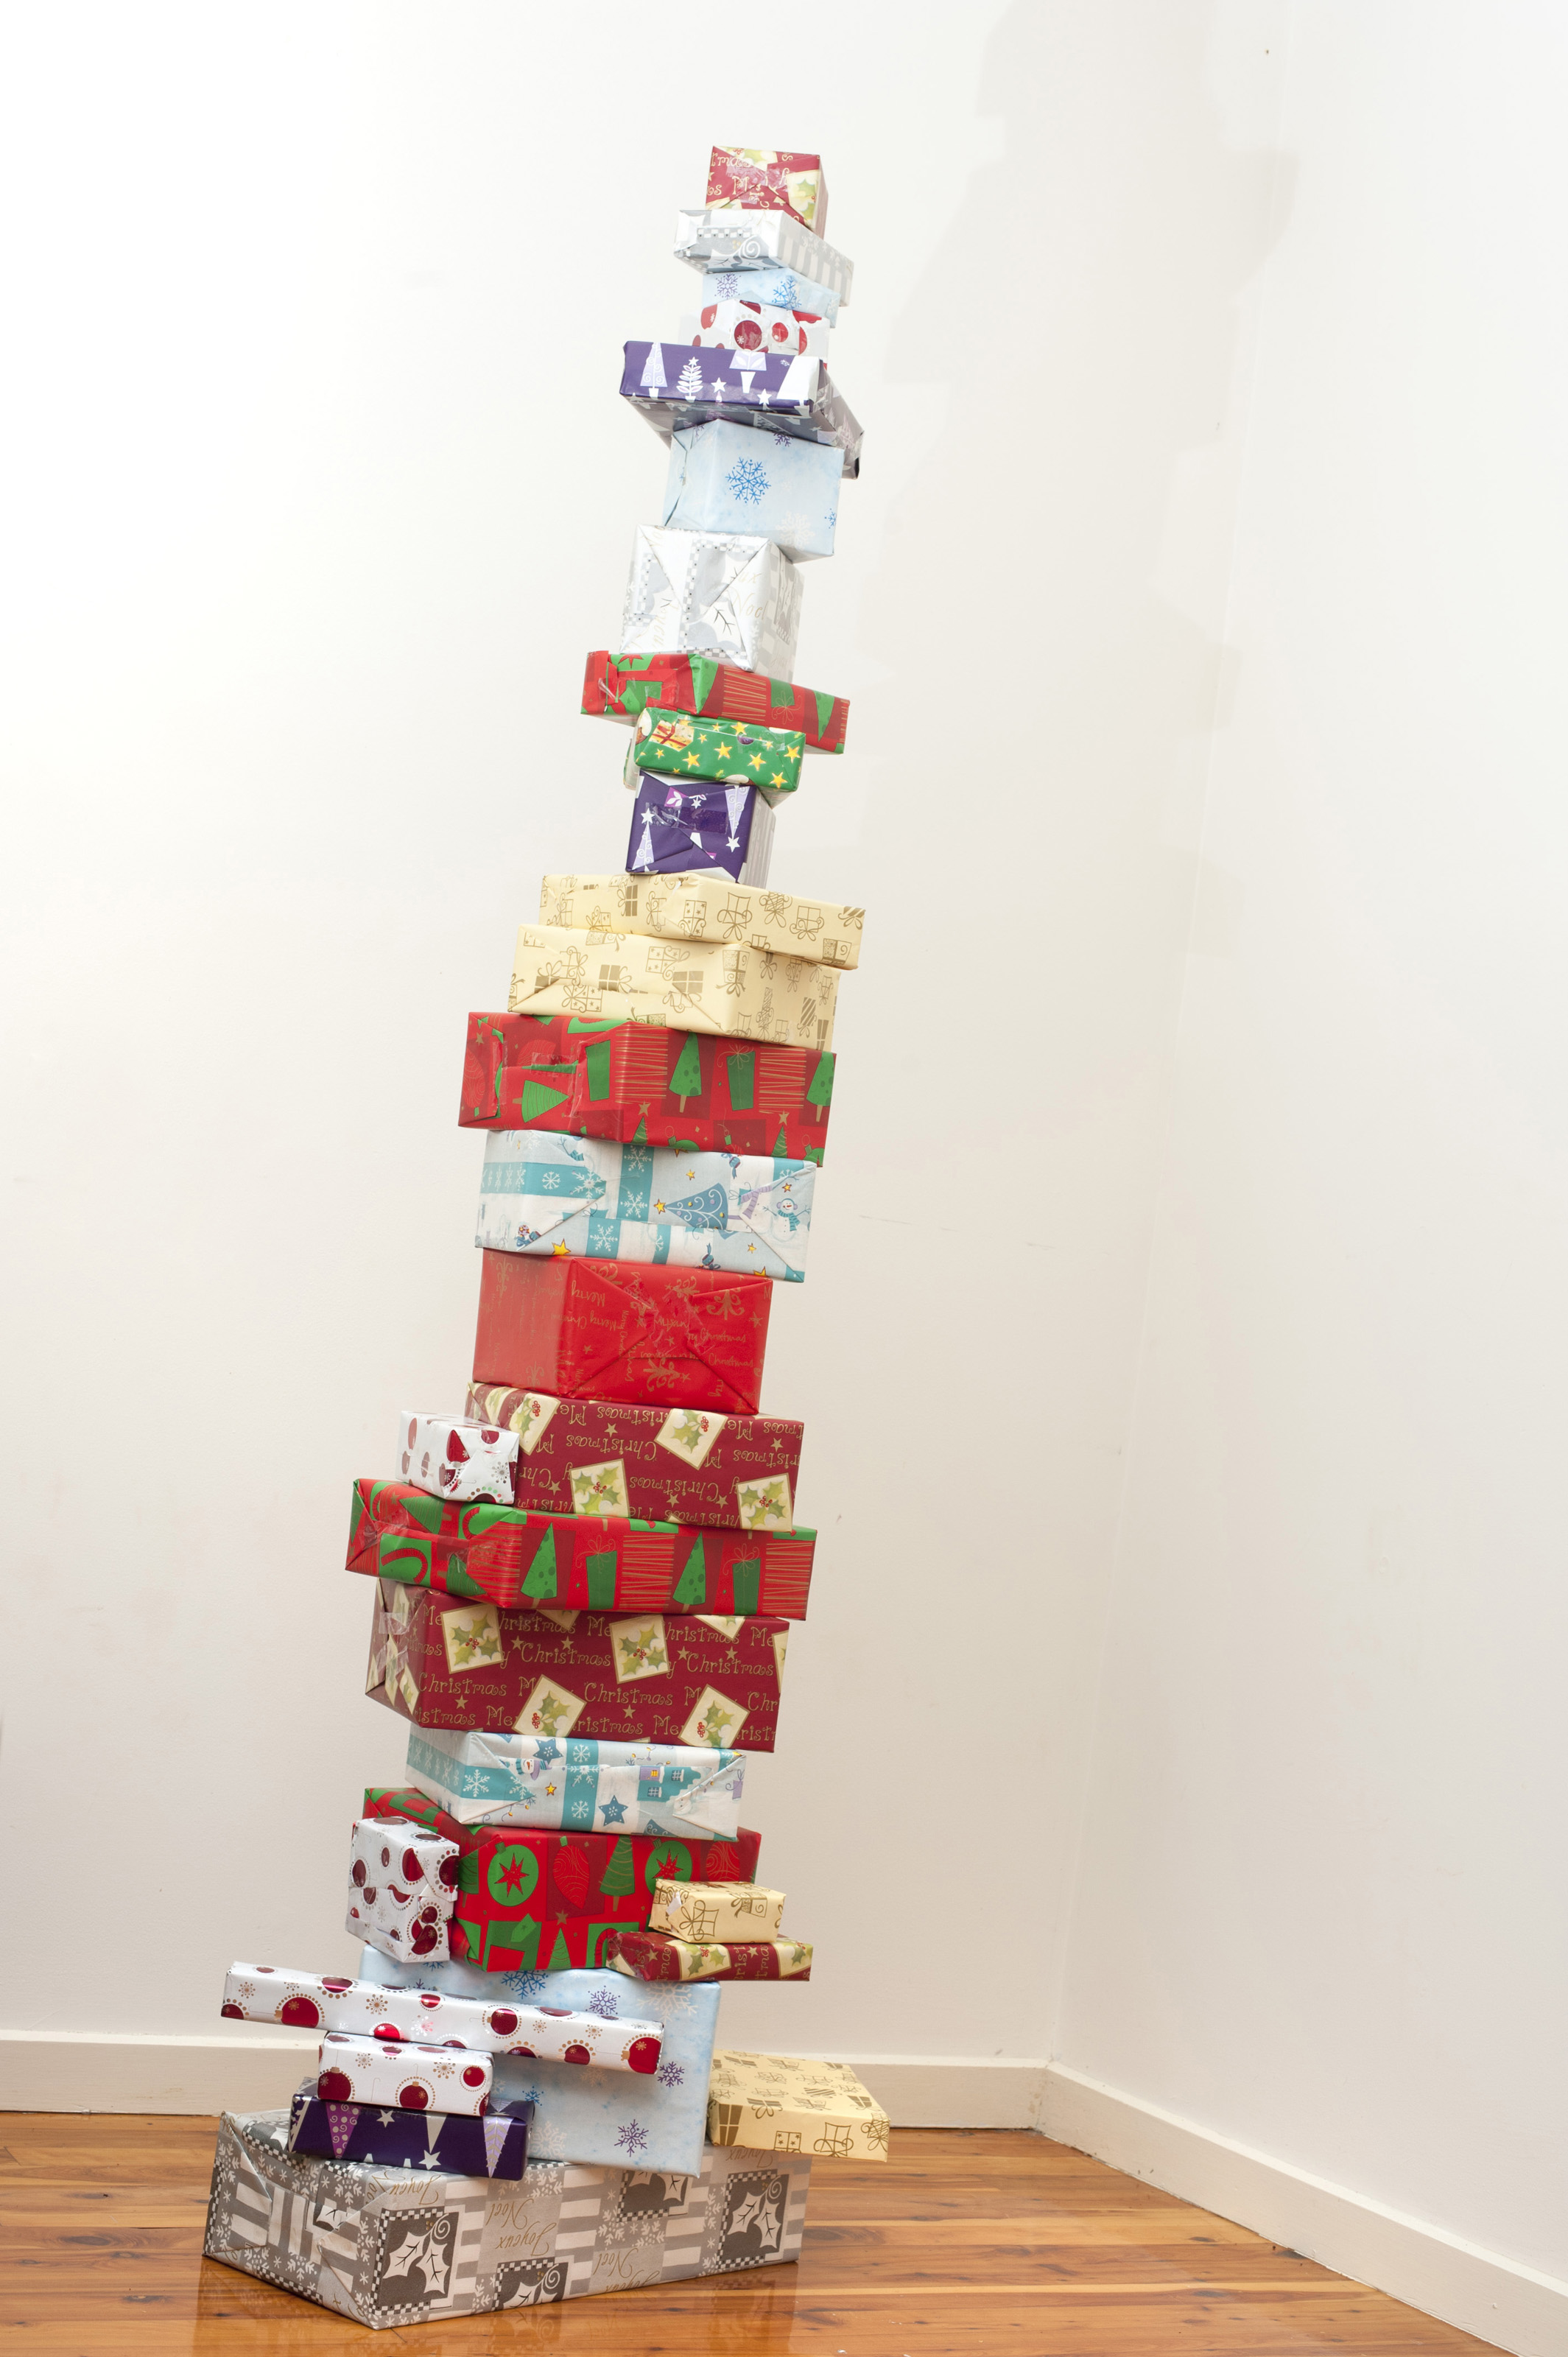 Free stock photo tall stacked tower of christmas